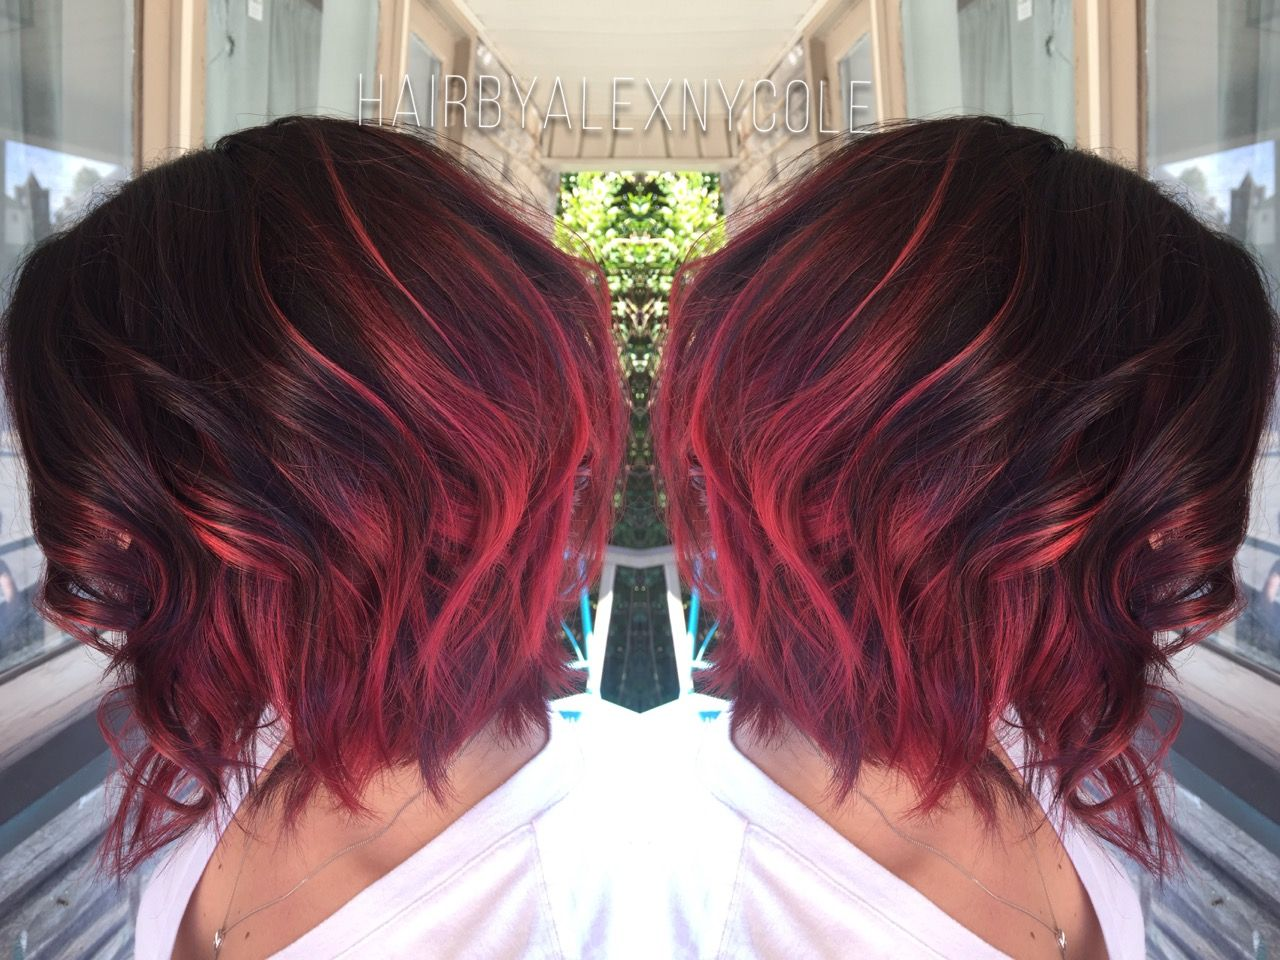 Ruby Red Ombre On Short Hair Http Niffler Elm Tumblr Com Post 157401012081 Asian Guys Hairstyles 2017 Short Ha Short Ombre Hair Hair Styles Short Hair Styles